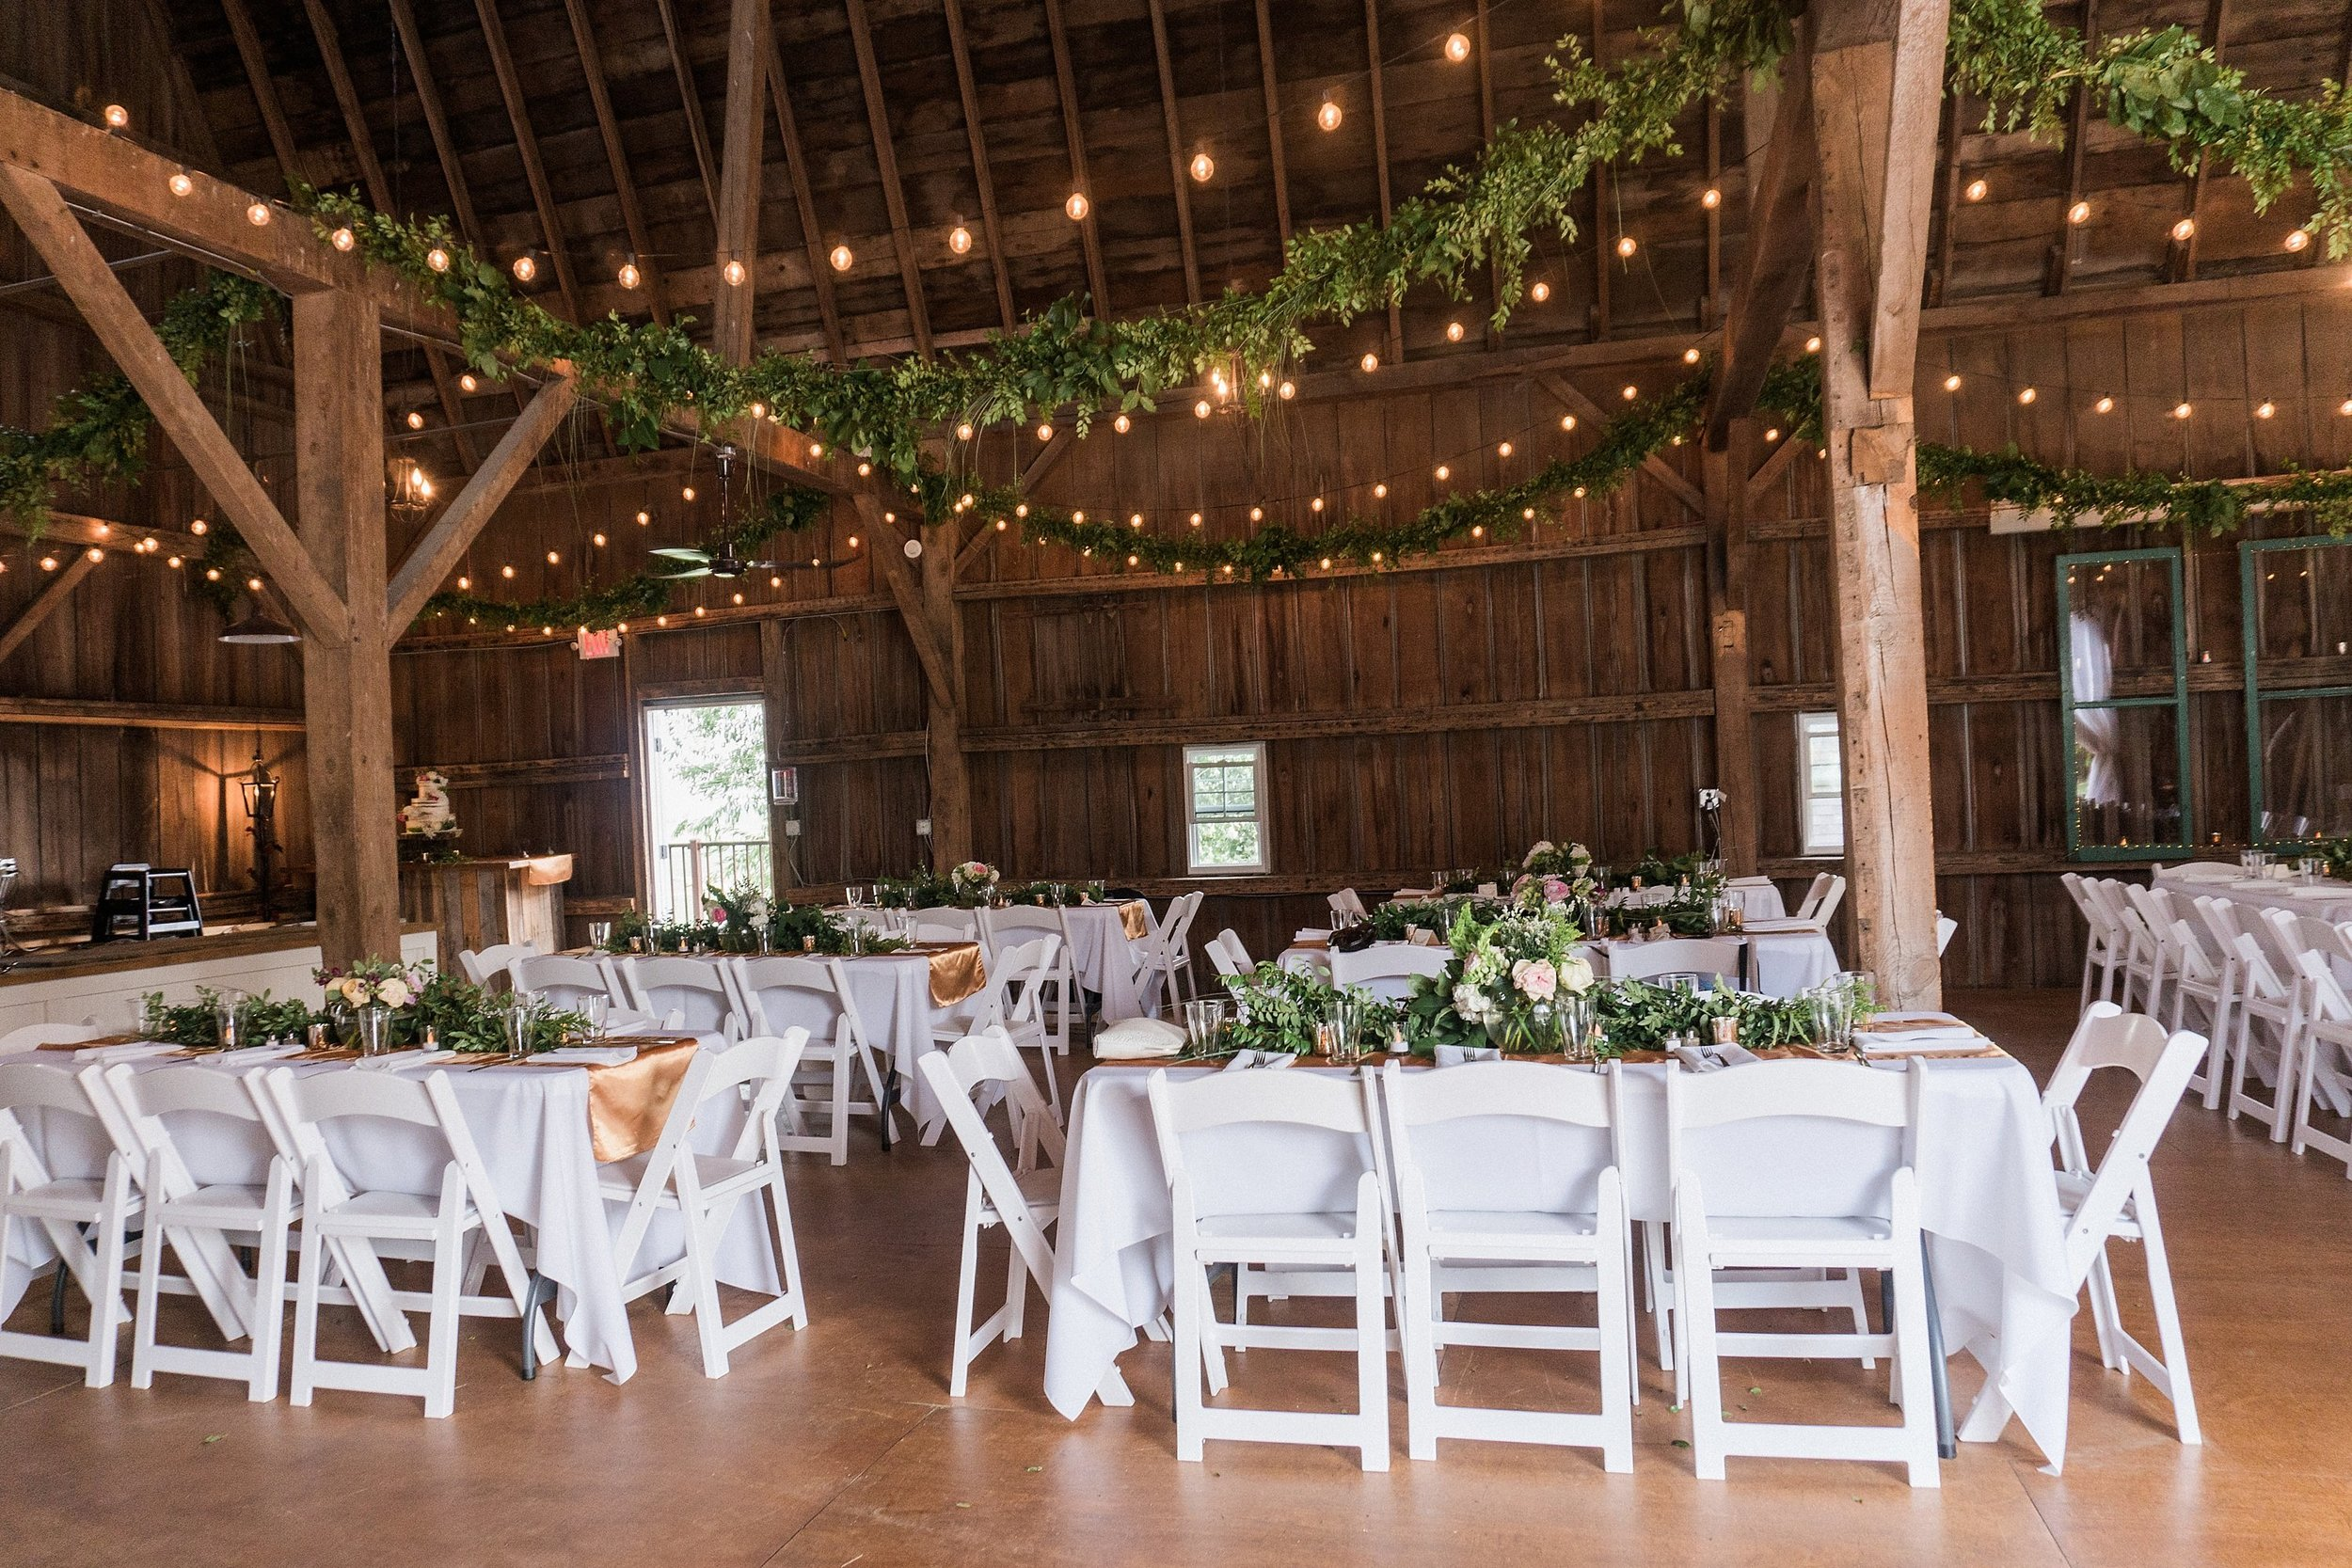 wedding reception inside a barn decorated with cafe lights and garland hanging from the ceiling and gold table runners on white table cloths